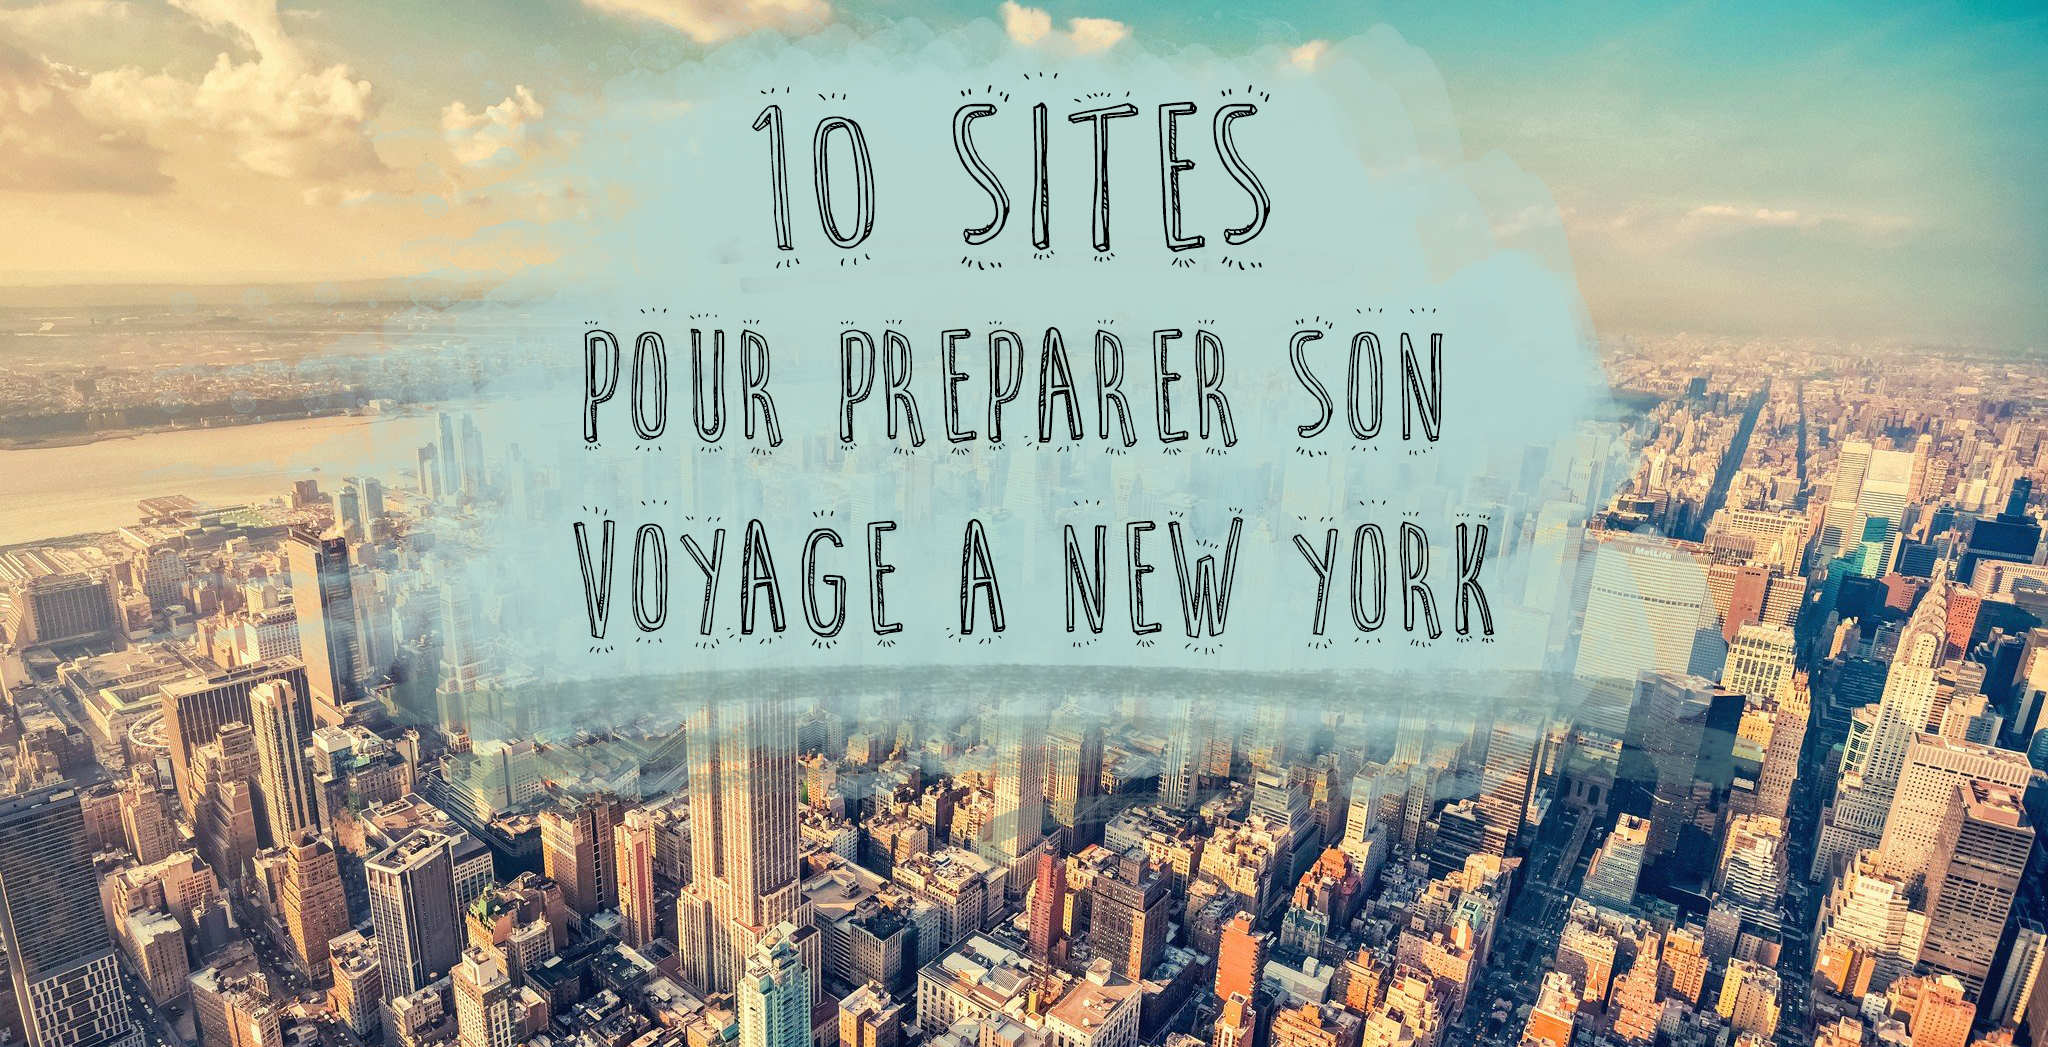 10 sites pour pr parer son voyage new york justeunedose un blog lifestyle made in lyon. Black Bedroom Furniture Sets. Home Design Ideas